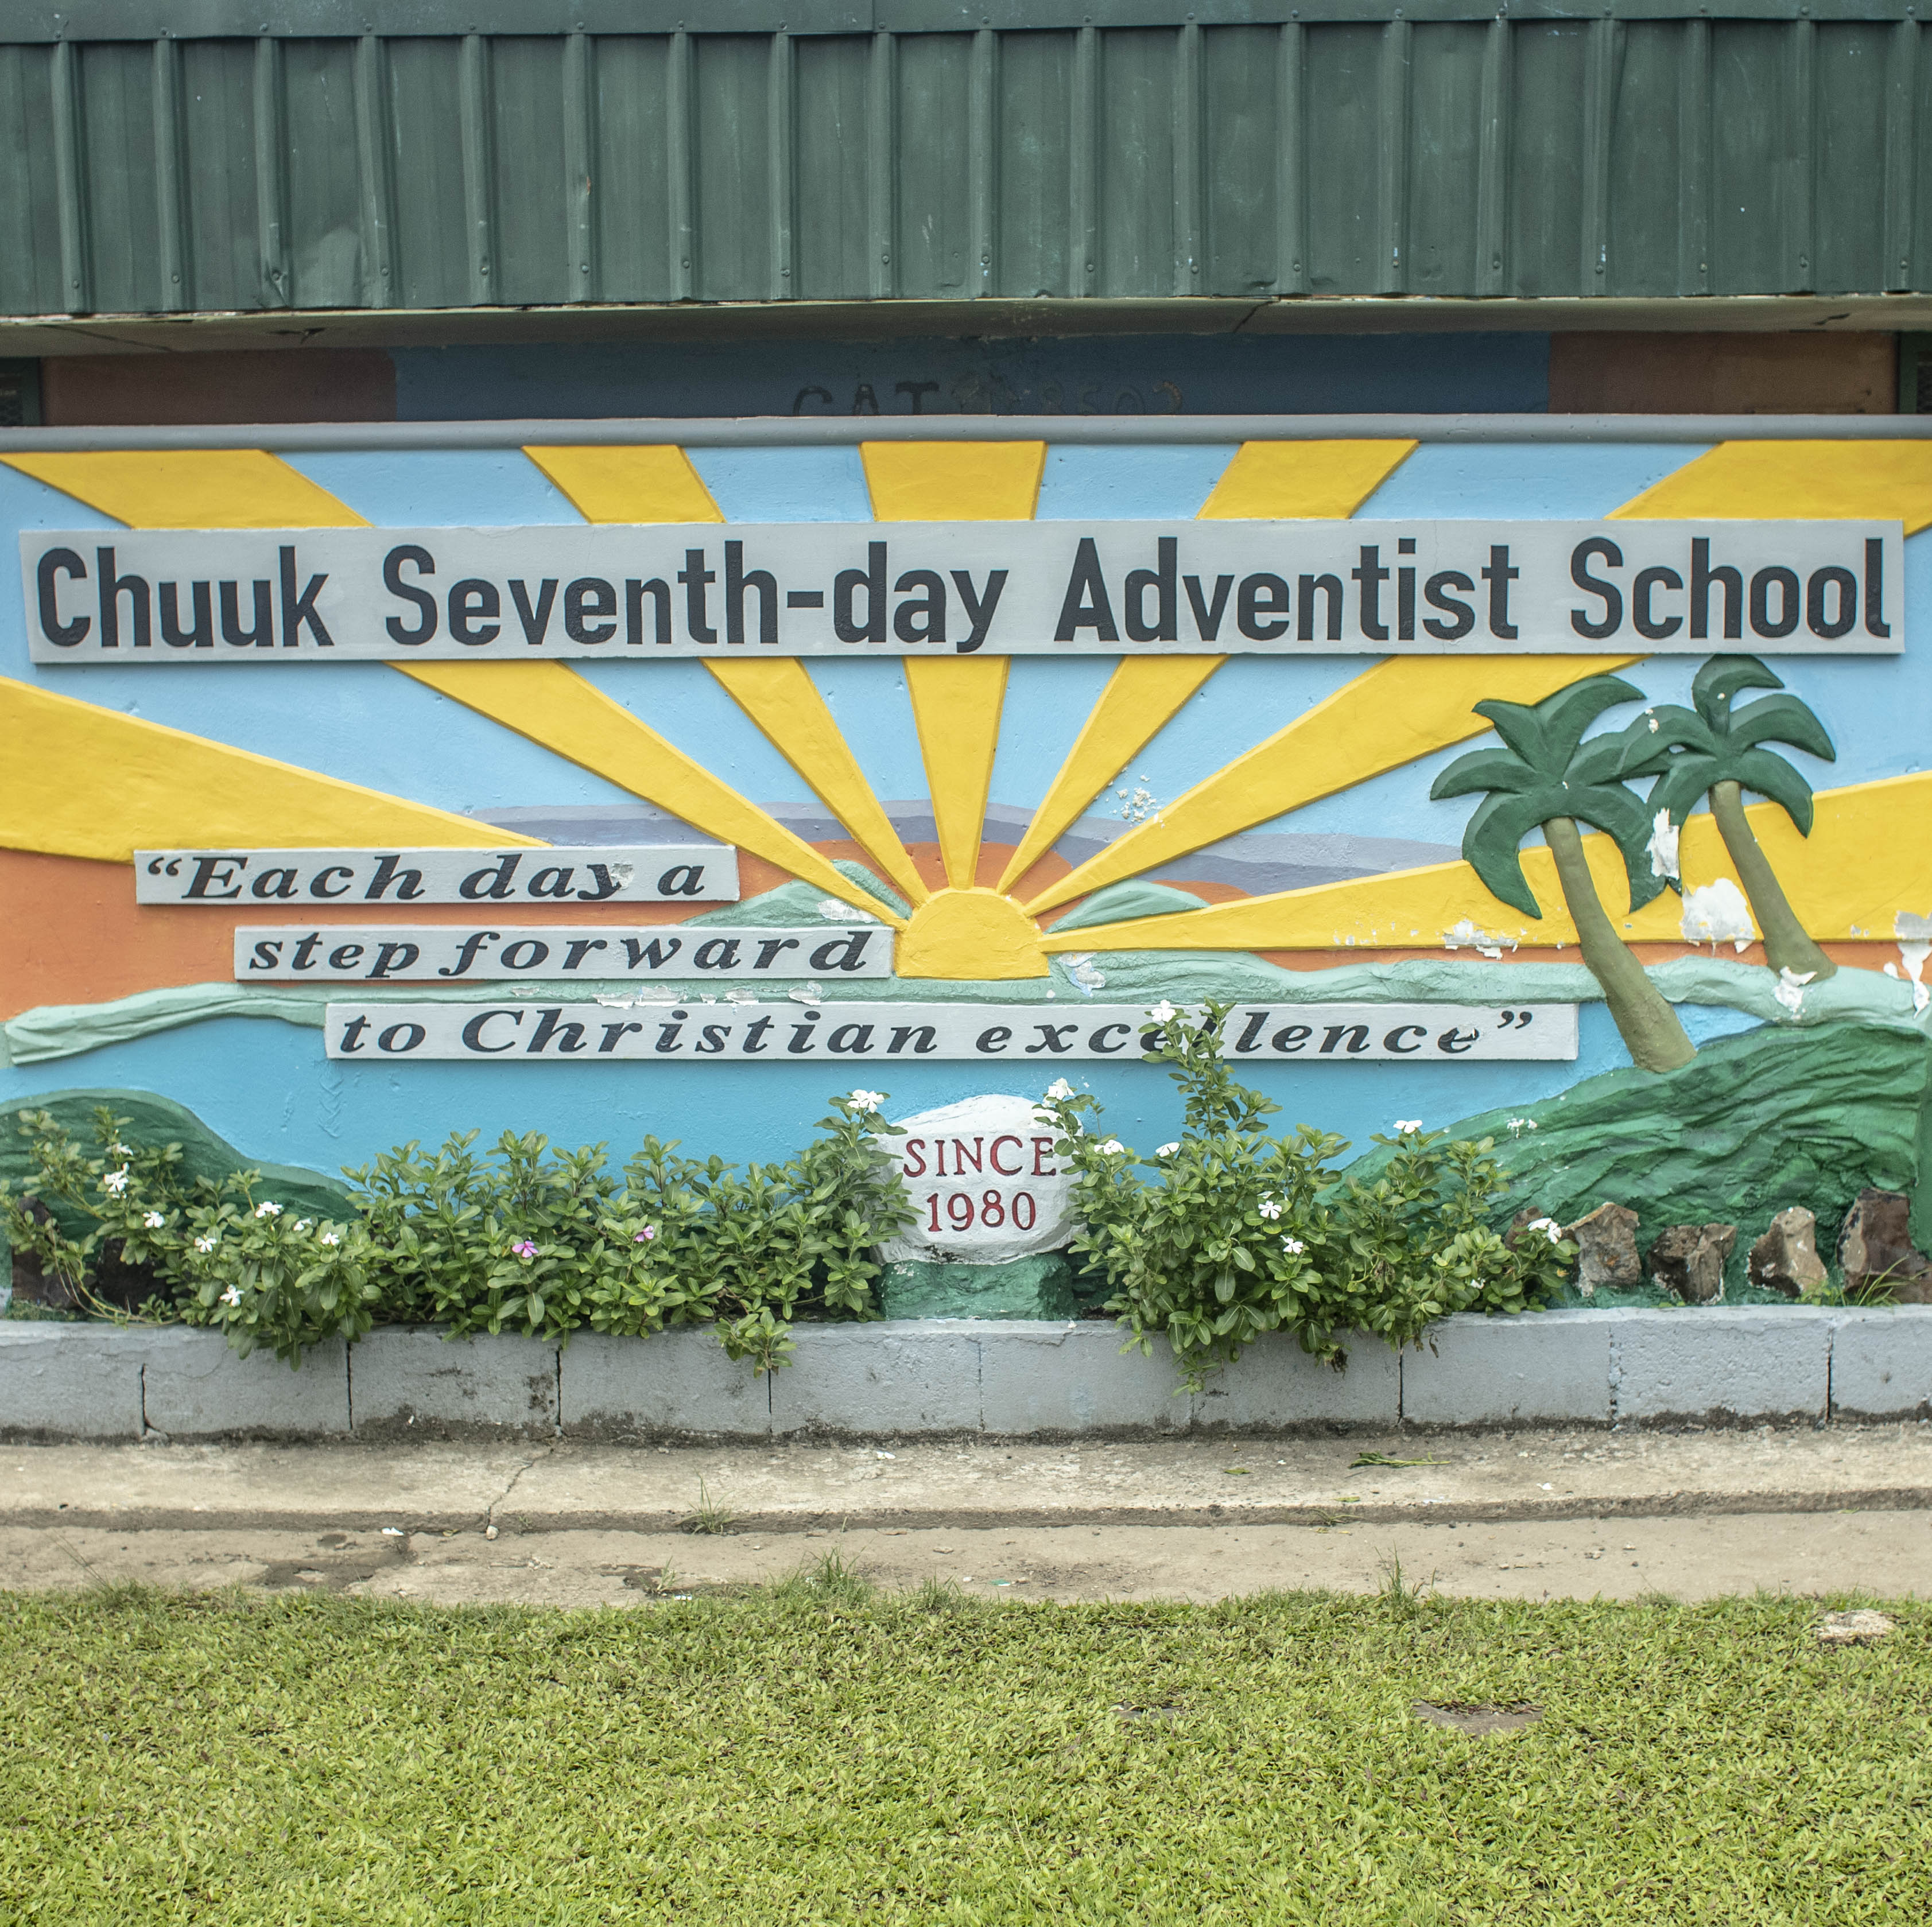 Donations: Chuuk Seventh-day Advenitst School Projects